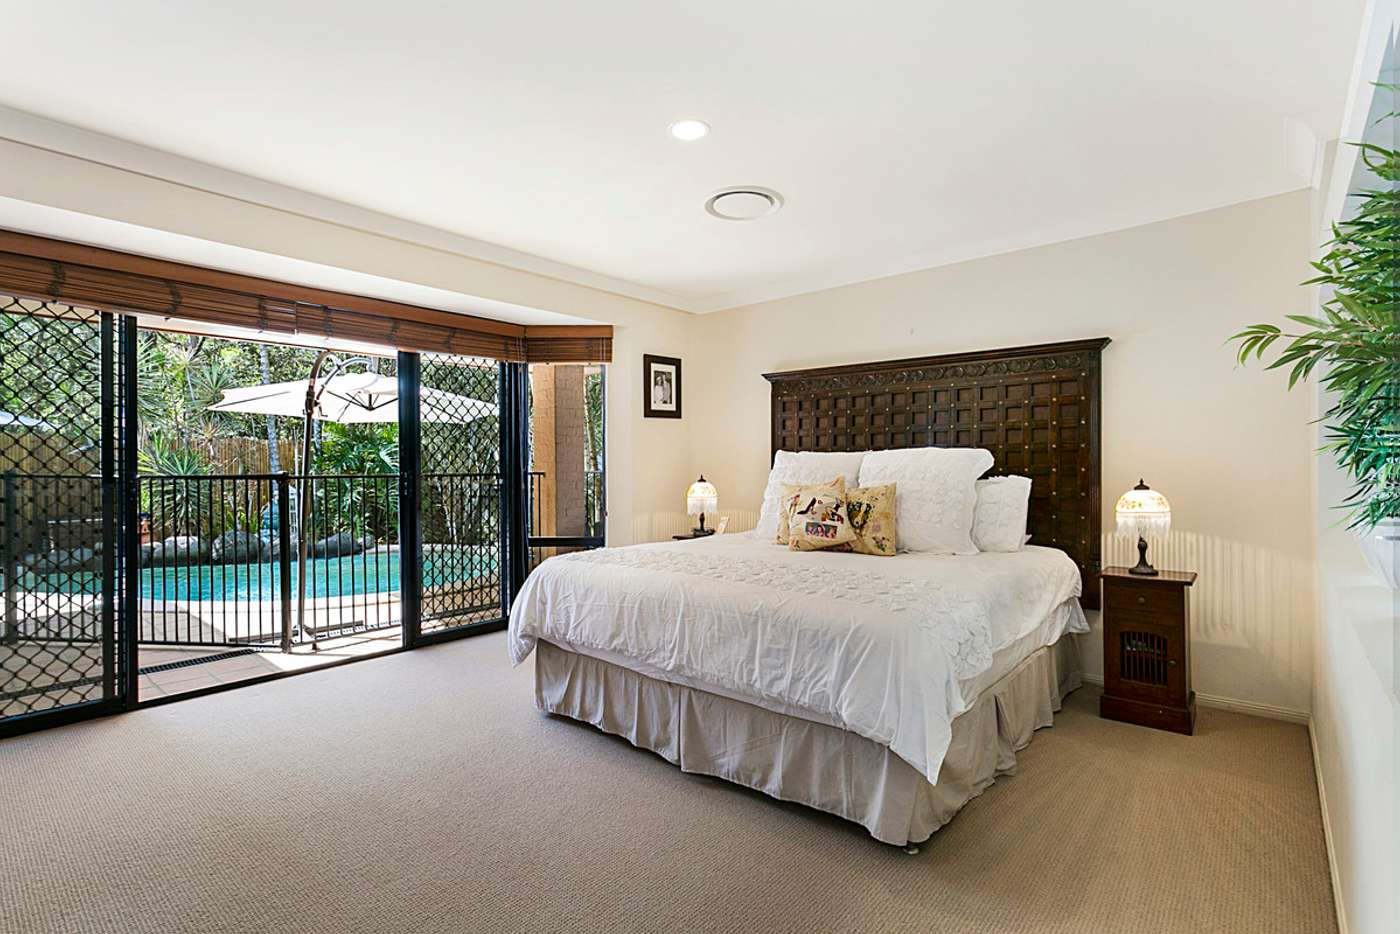 Fifth view of Homely house listing, 22 Barklya Crescent, Sinnamon Park QLD 4073